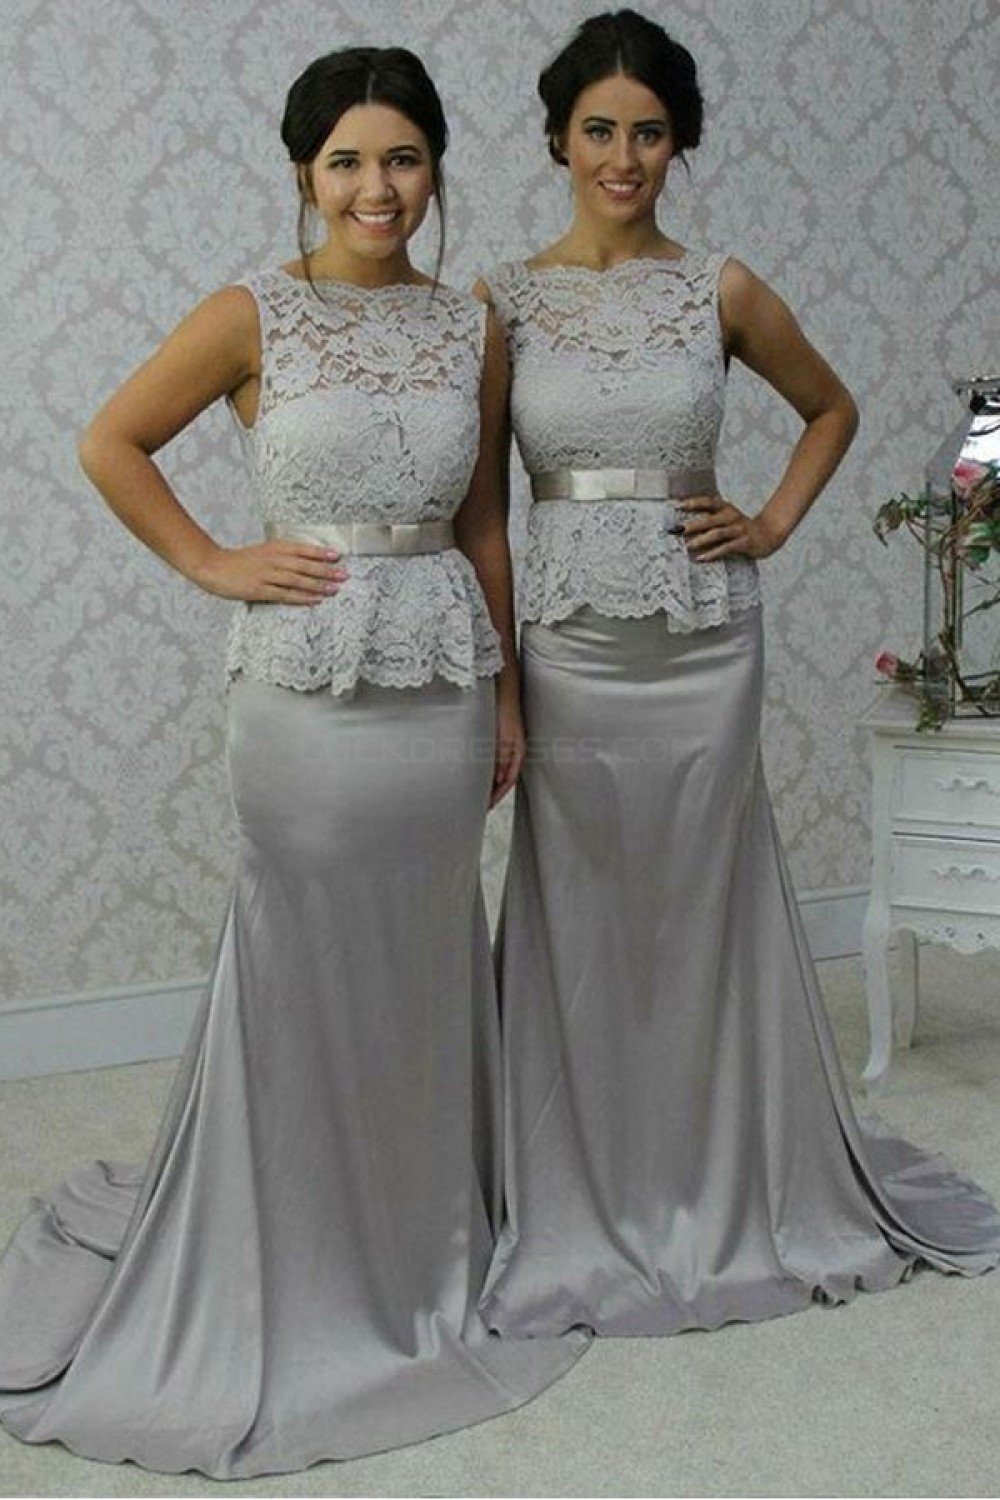 Silver mermaid lace wedding guest dresses bridesmaid dresses 3010251 long silver mermaid lace wedding guest dresses bridesmaid dresses 3010251 ombrellifo Images